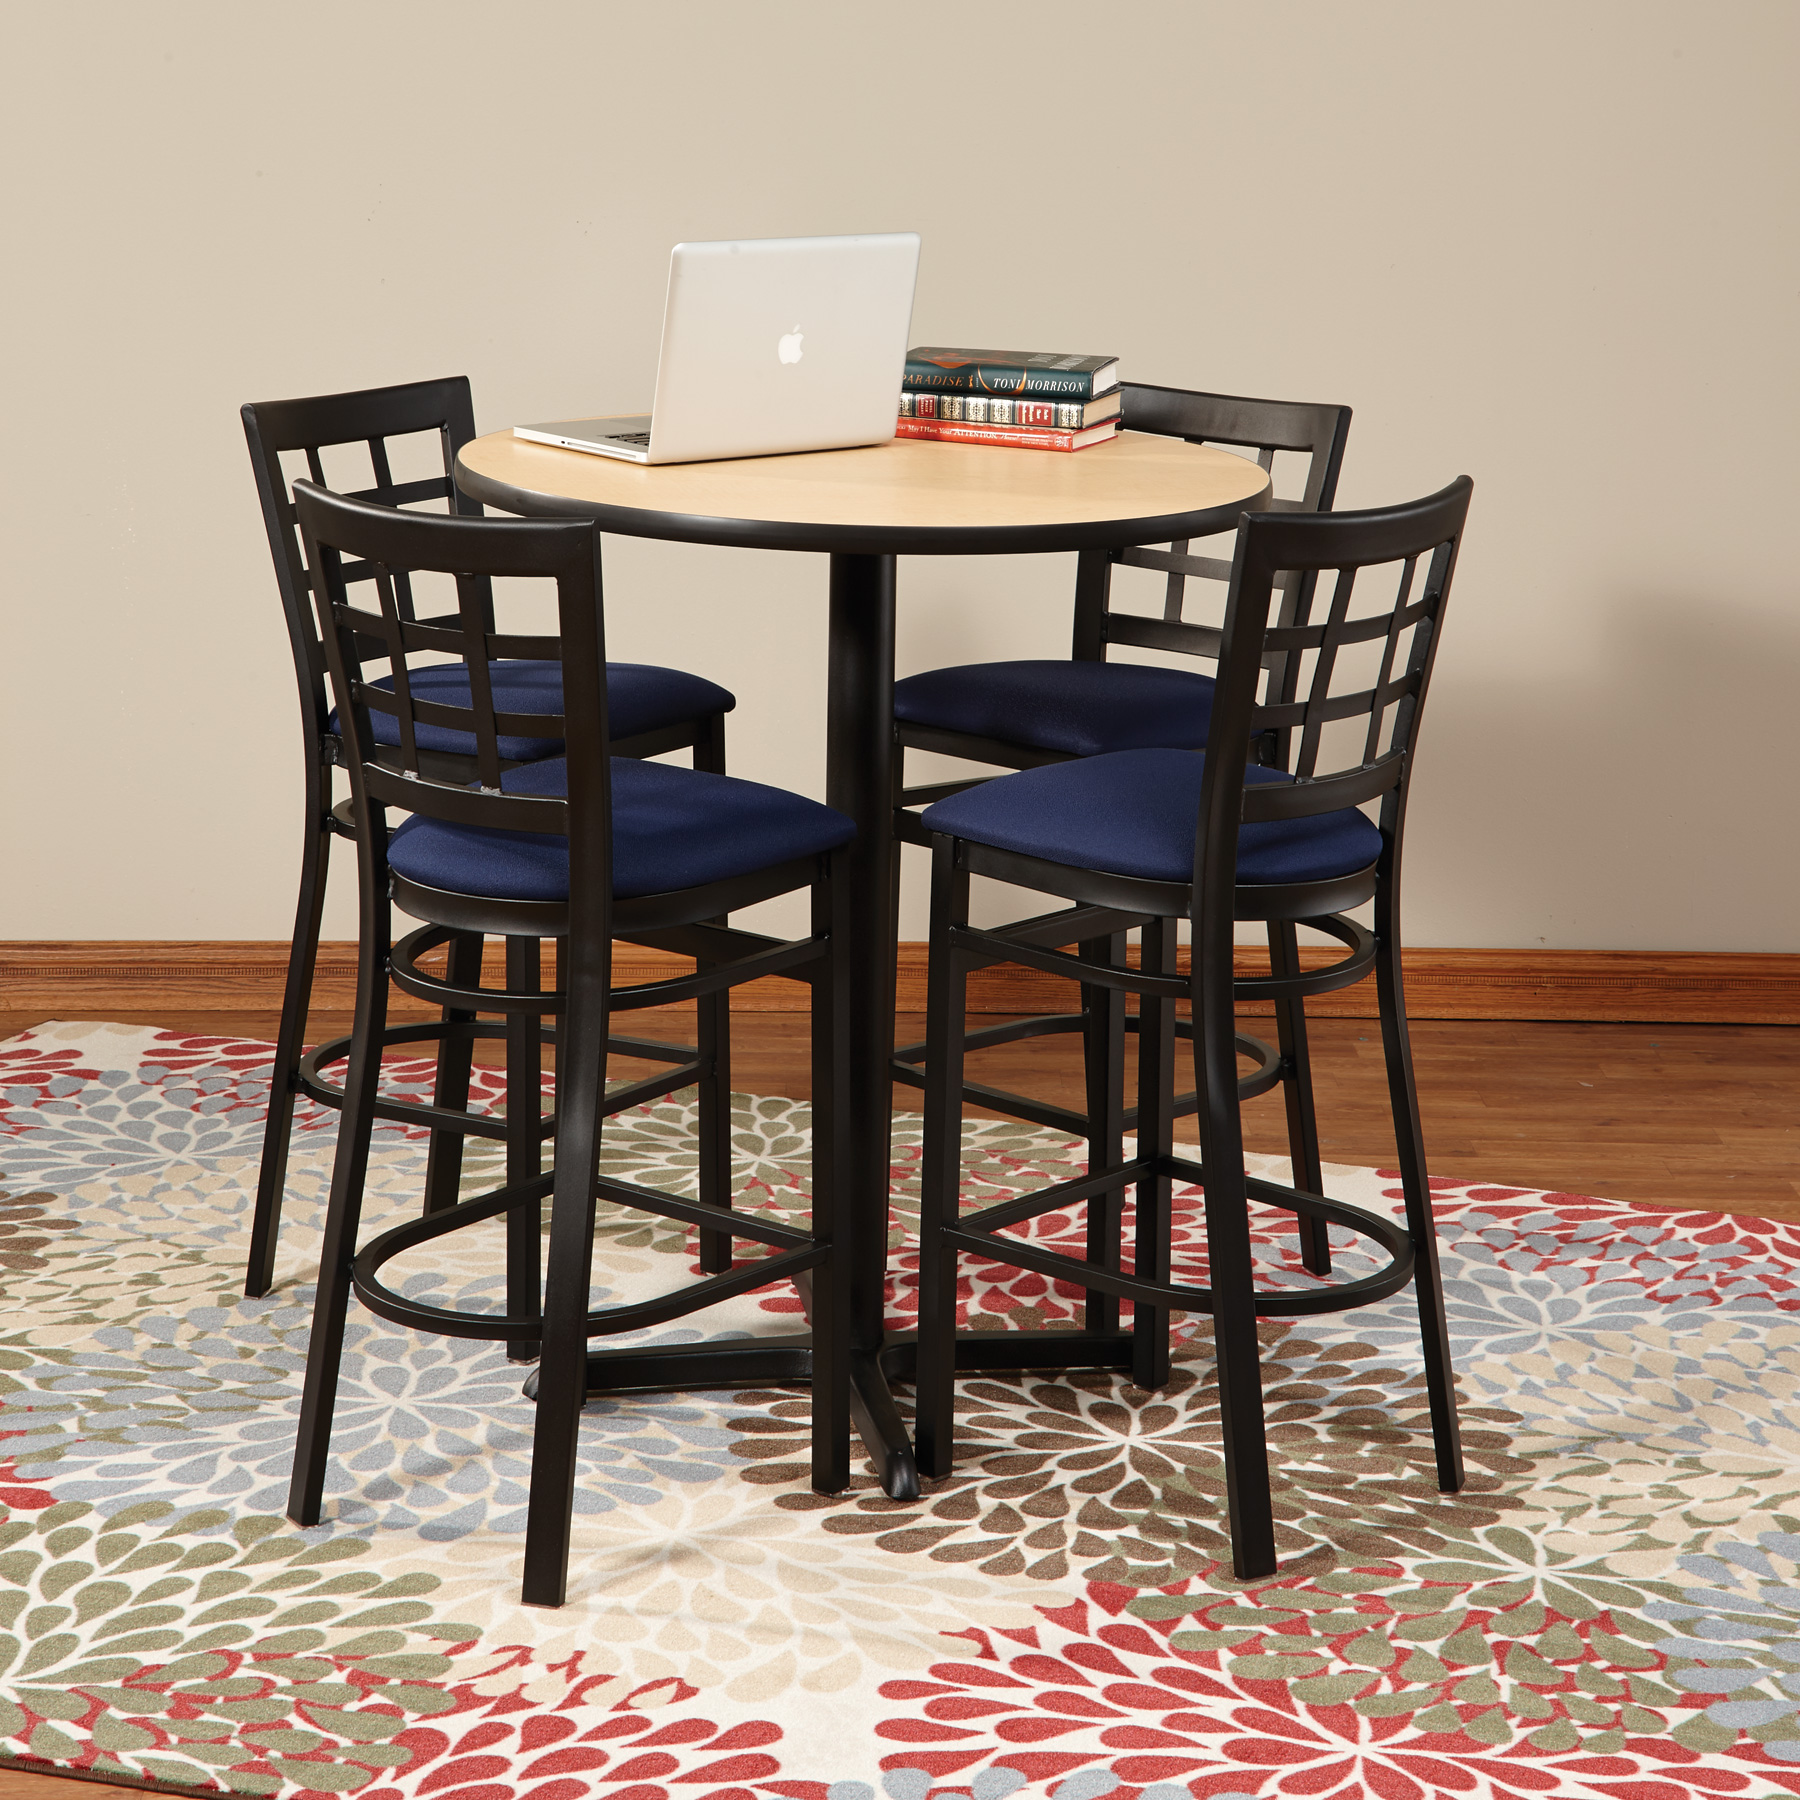 Collaborative Spaces Idea Gallery - Standing cafe table